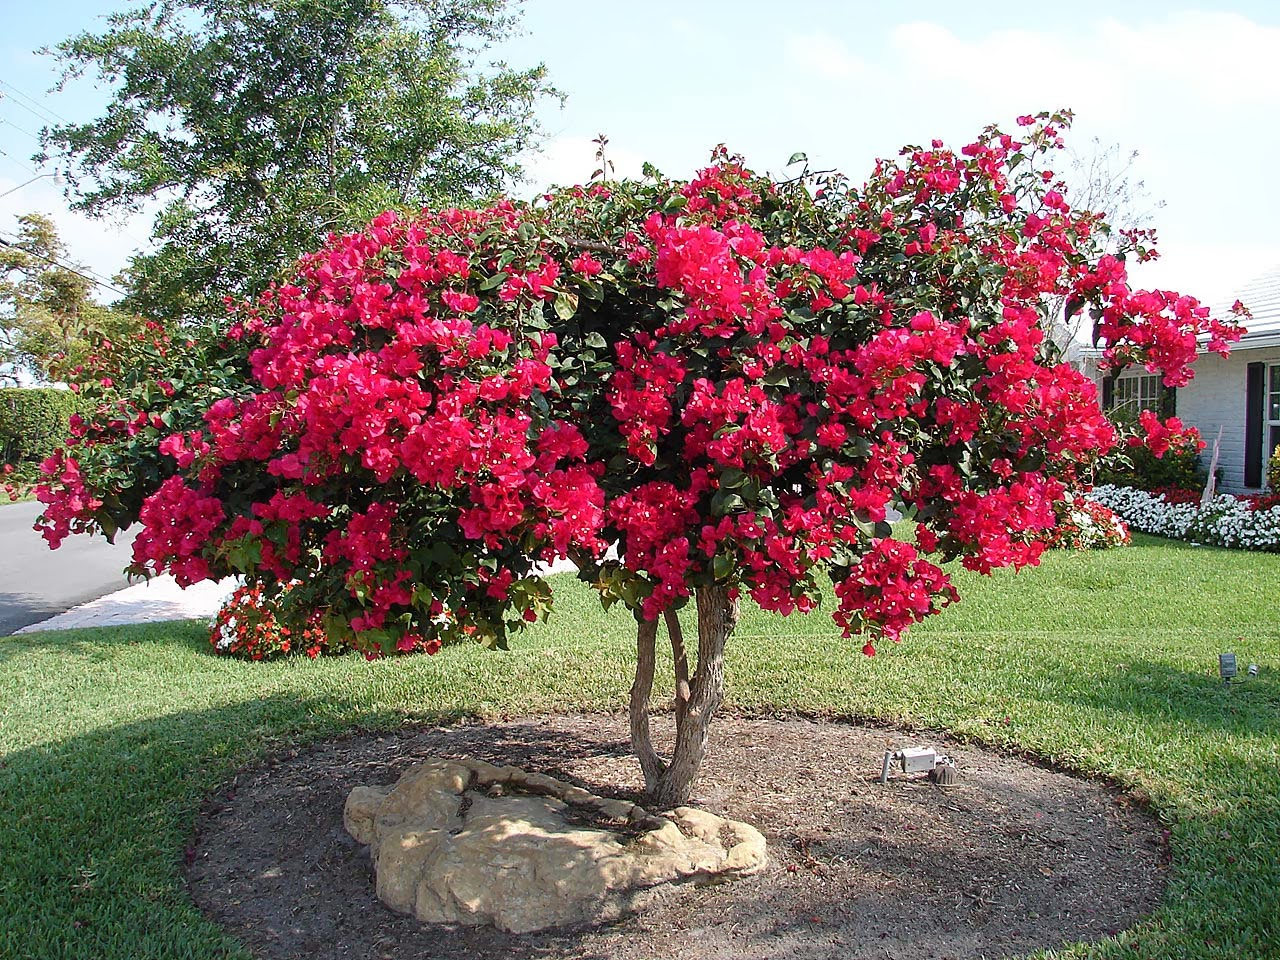 The Growth Rate Of Bougainvilleas Varies From Slow To Rapid Depending On Variety They Tend Flower All Year Round In Equatorial Regions